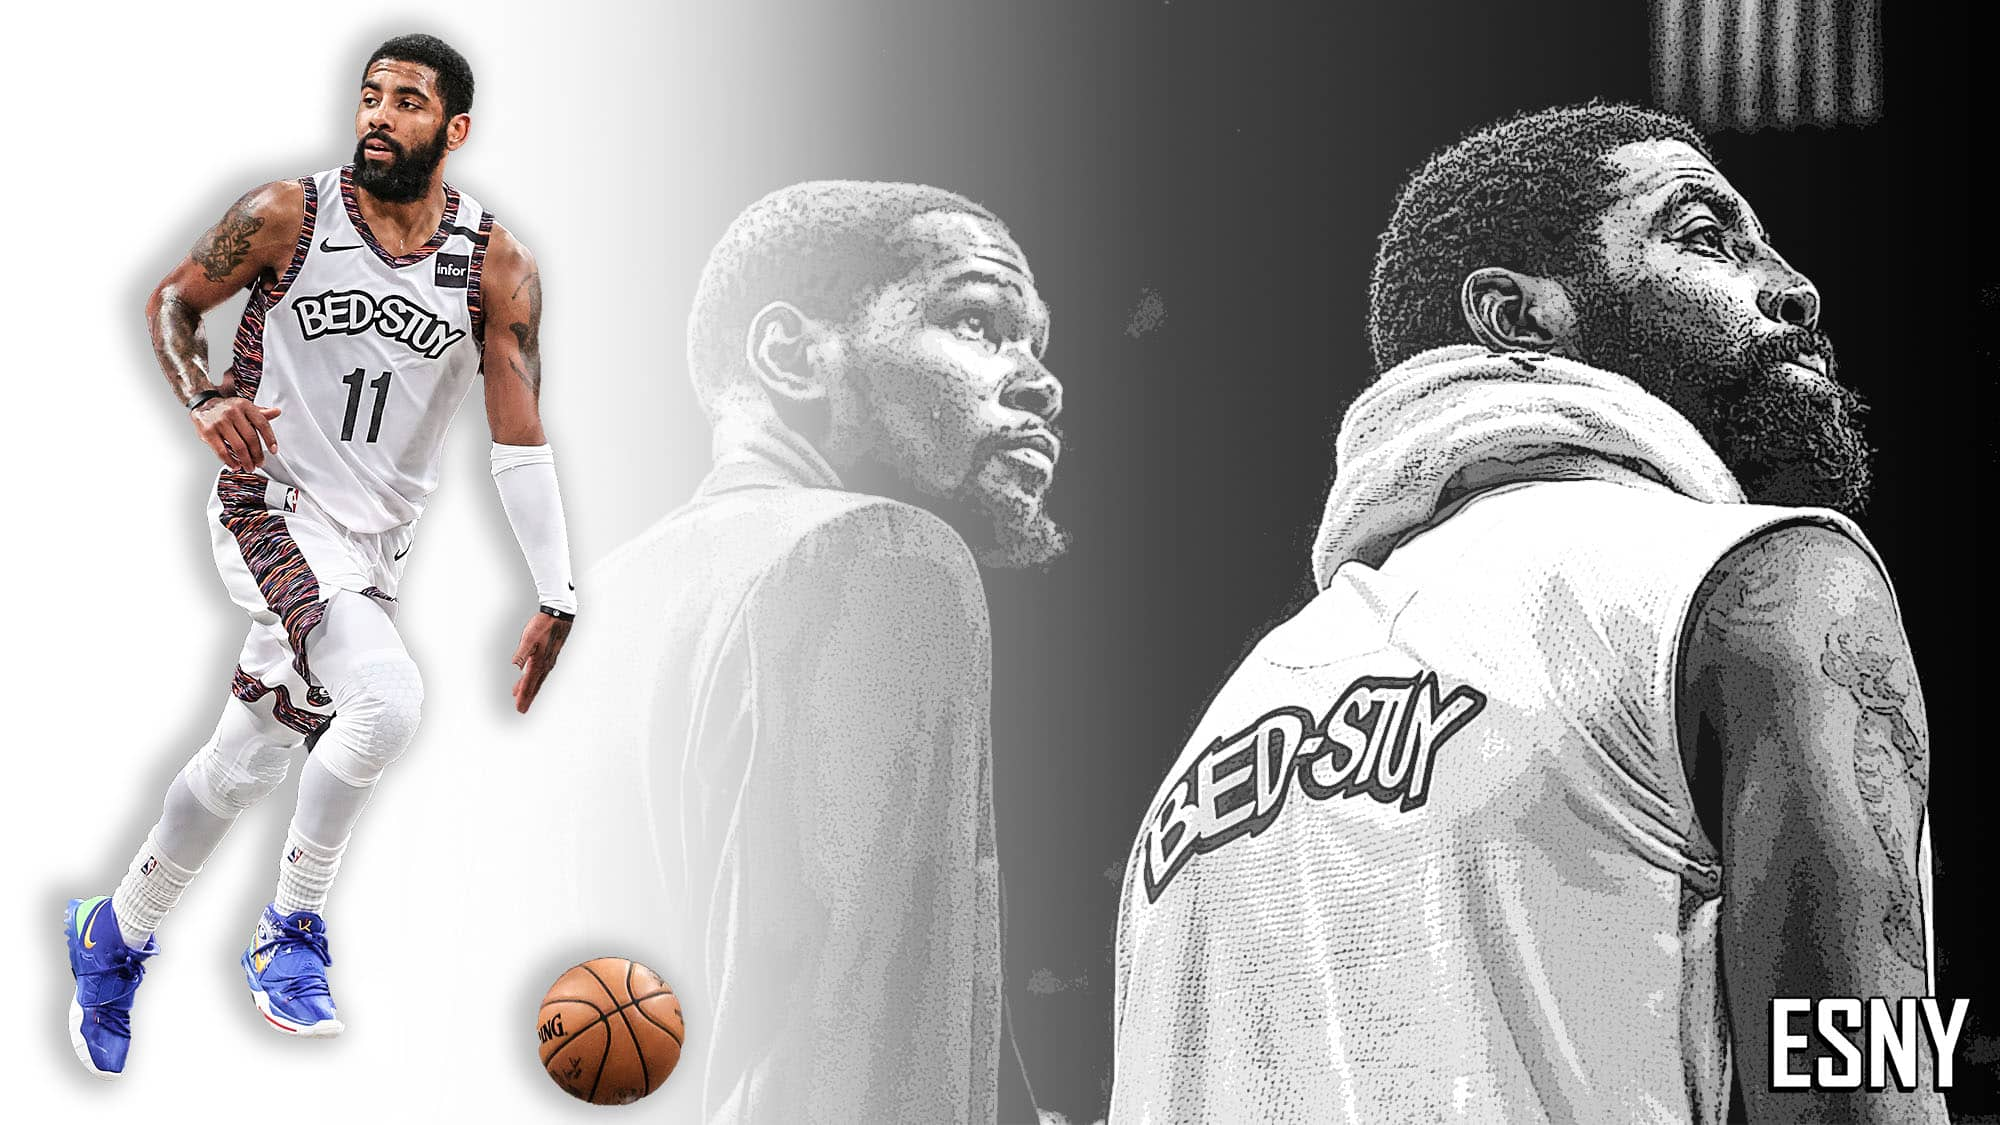 Kyrie Irving S Comments And The New Normal For Brooklyn Nets Fans